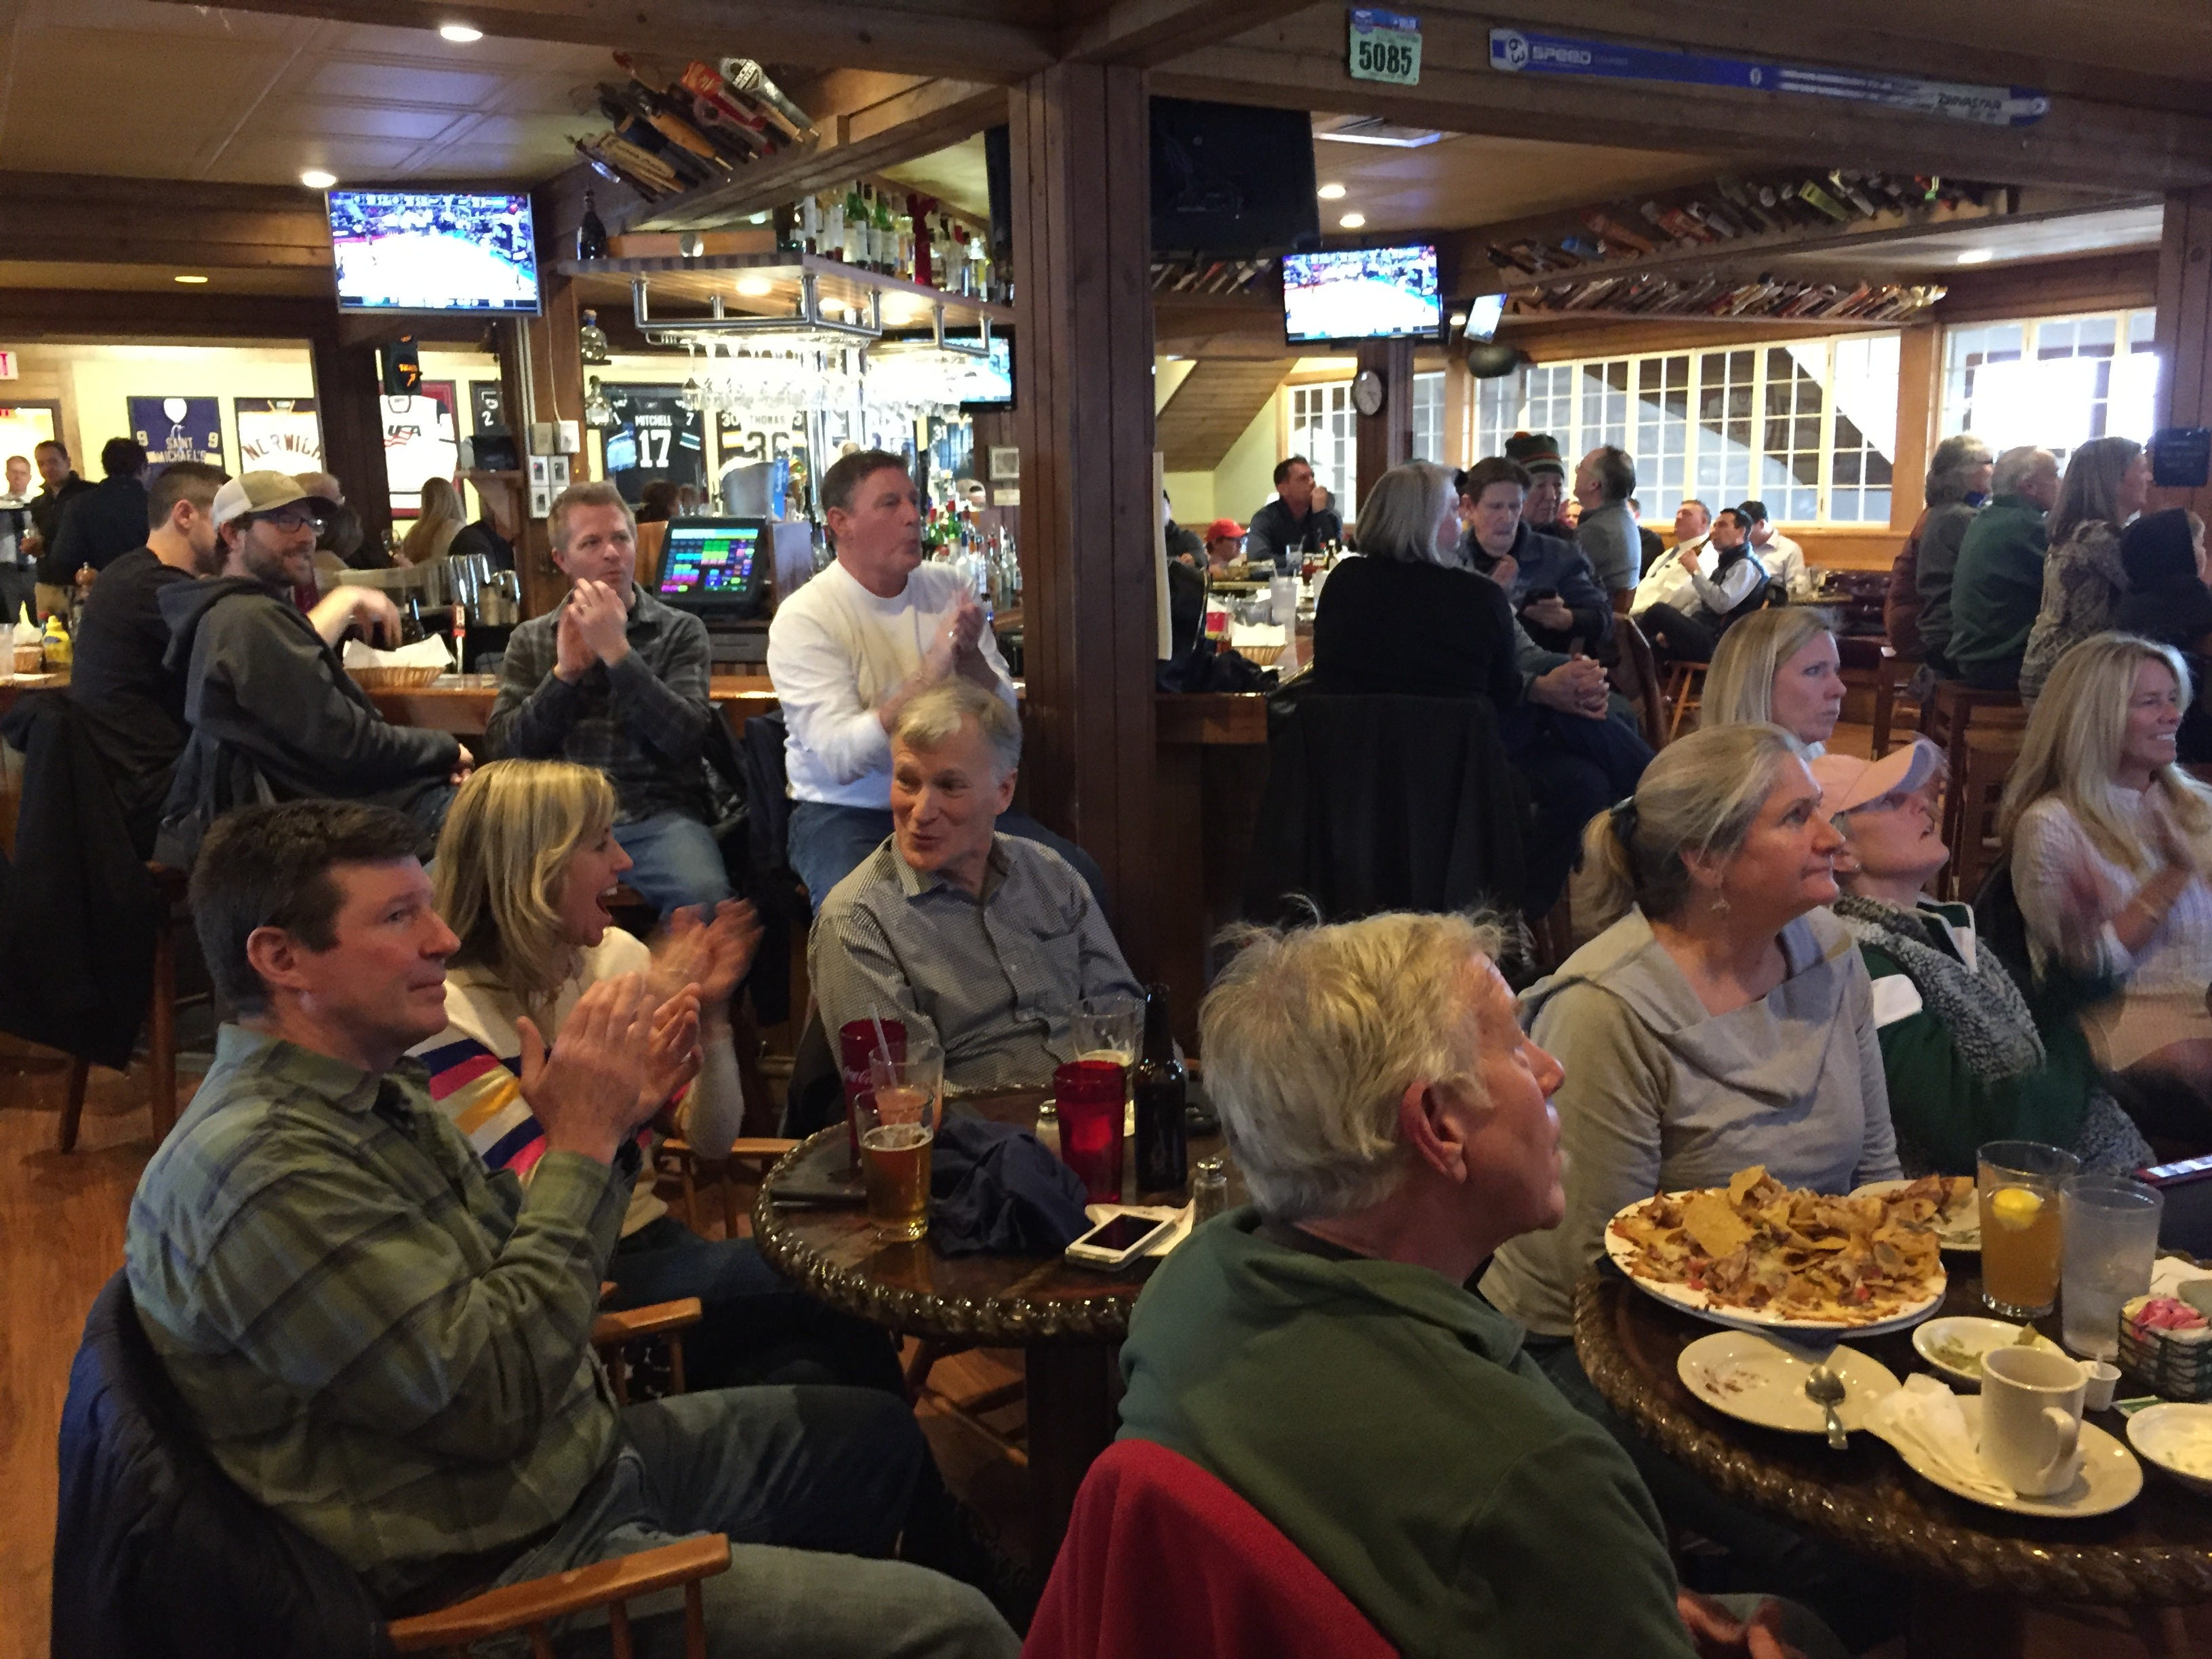 Fans at The Windjammer Restaurant and Upper Deck Pub in South Burlington cheer as the University of Vermont plays Florida State in an NCAA basketball tournament game Thursday, March 21, 2019.